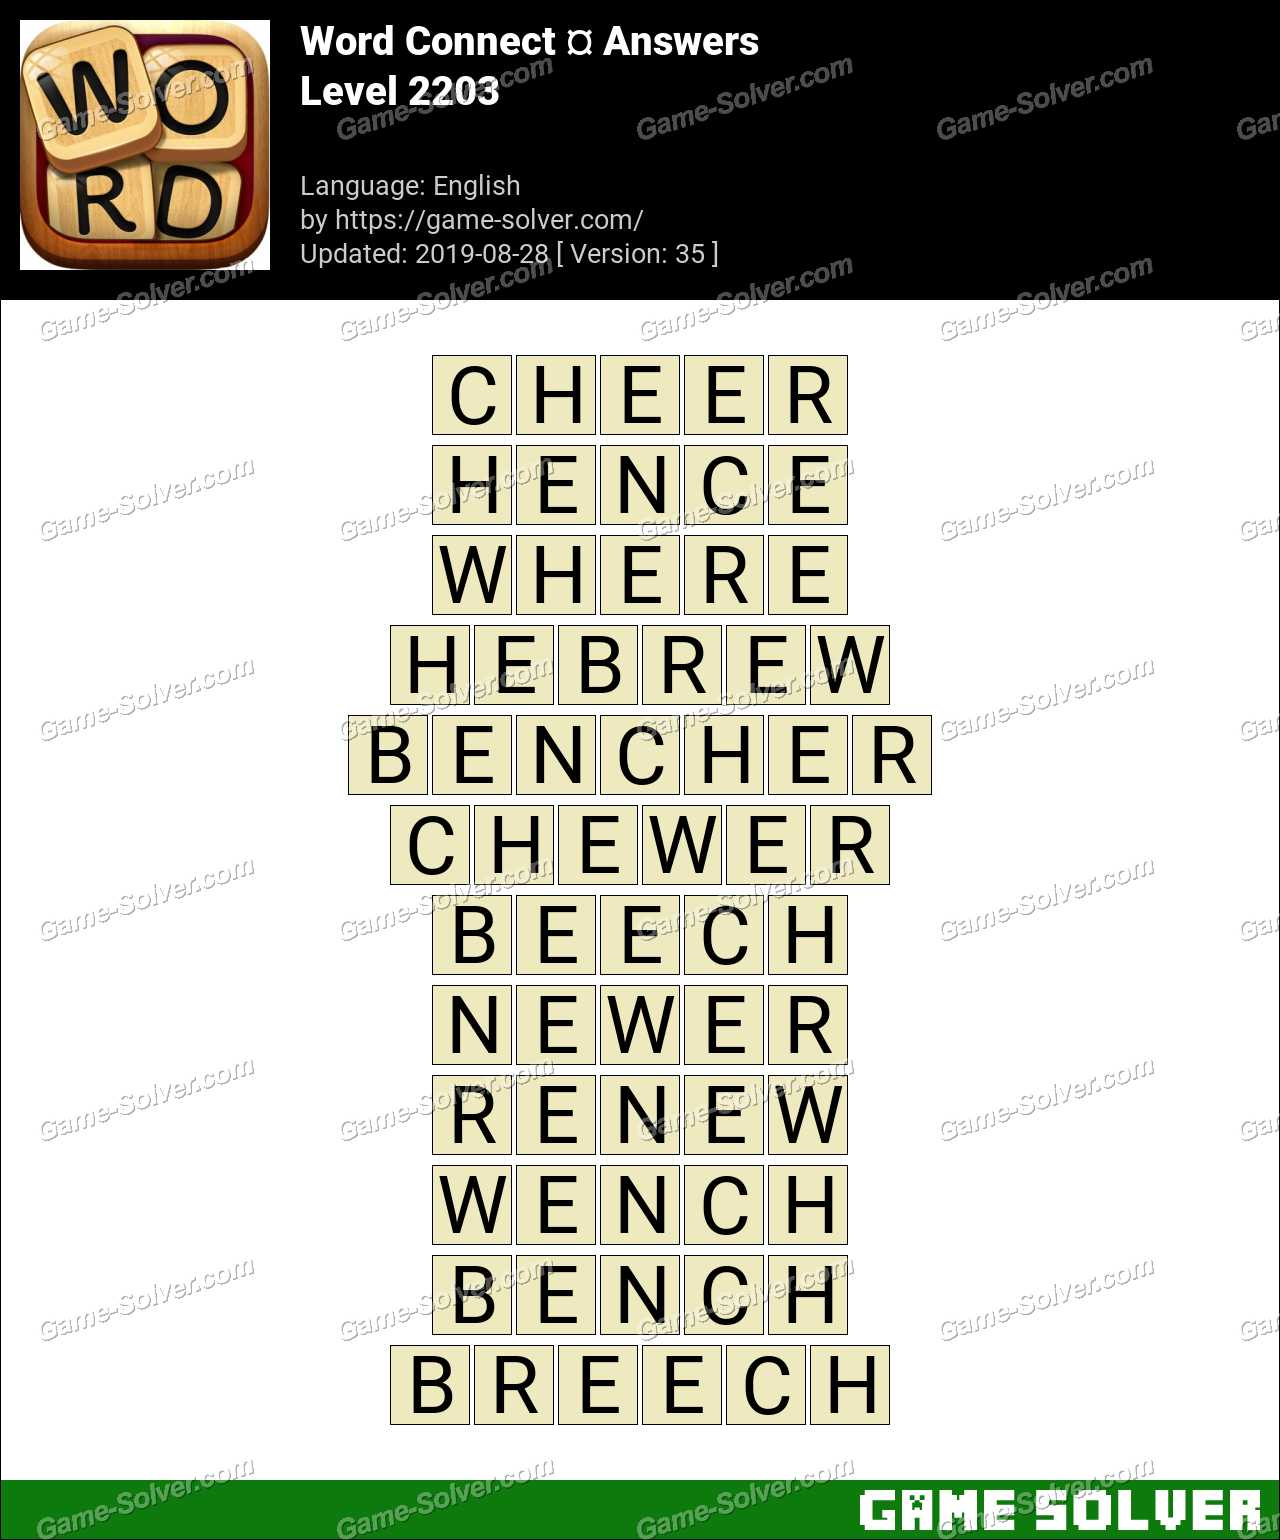 Word Connect Level 2203 Answers